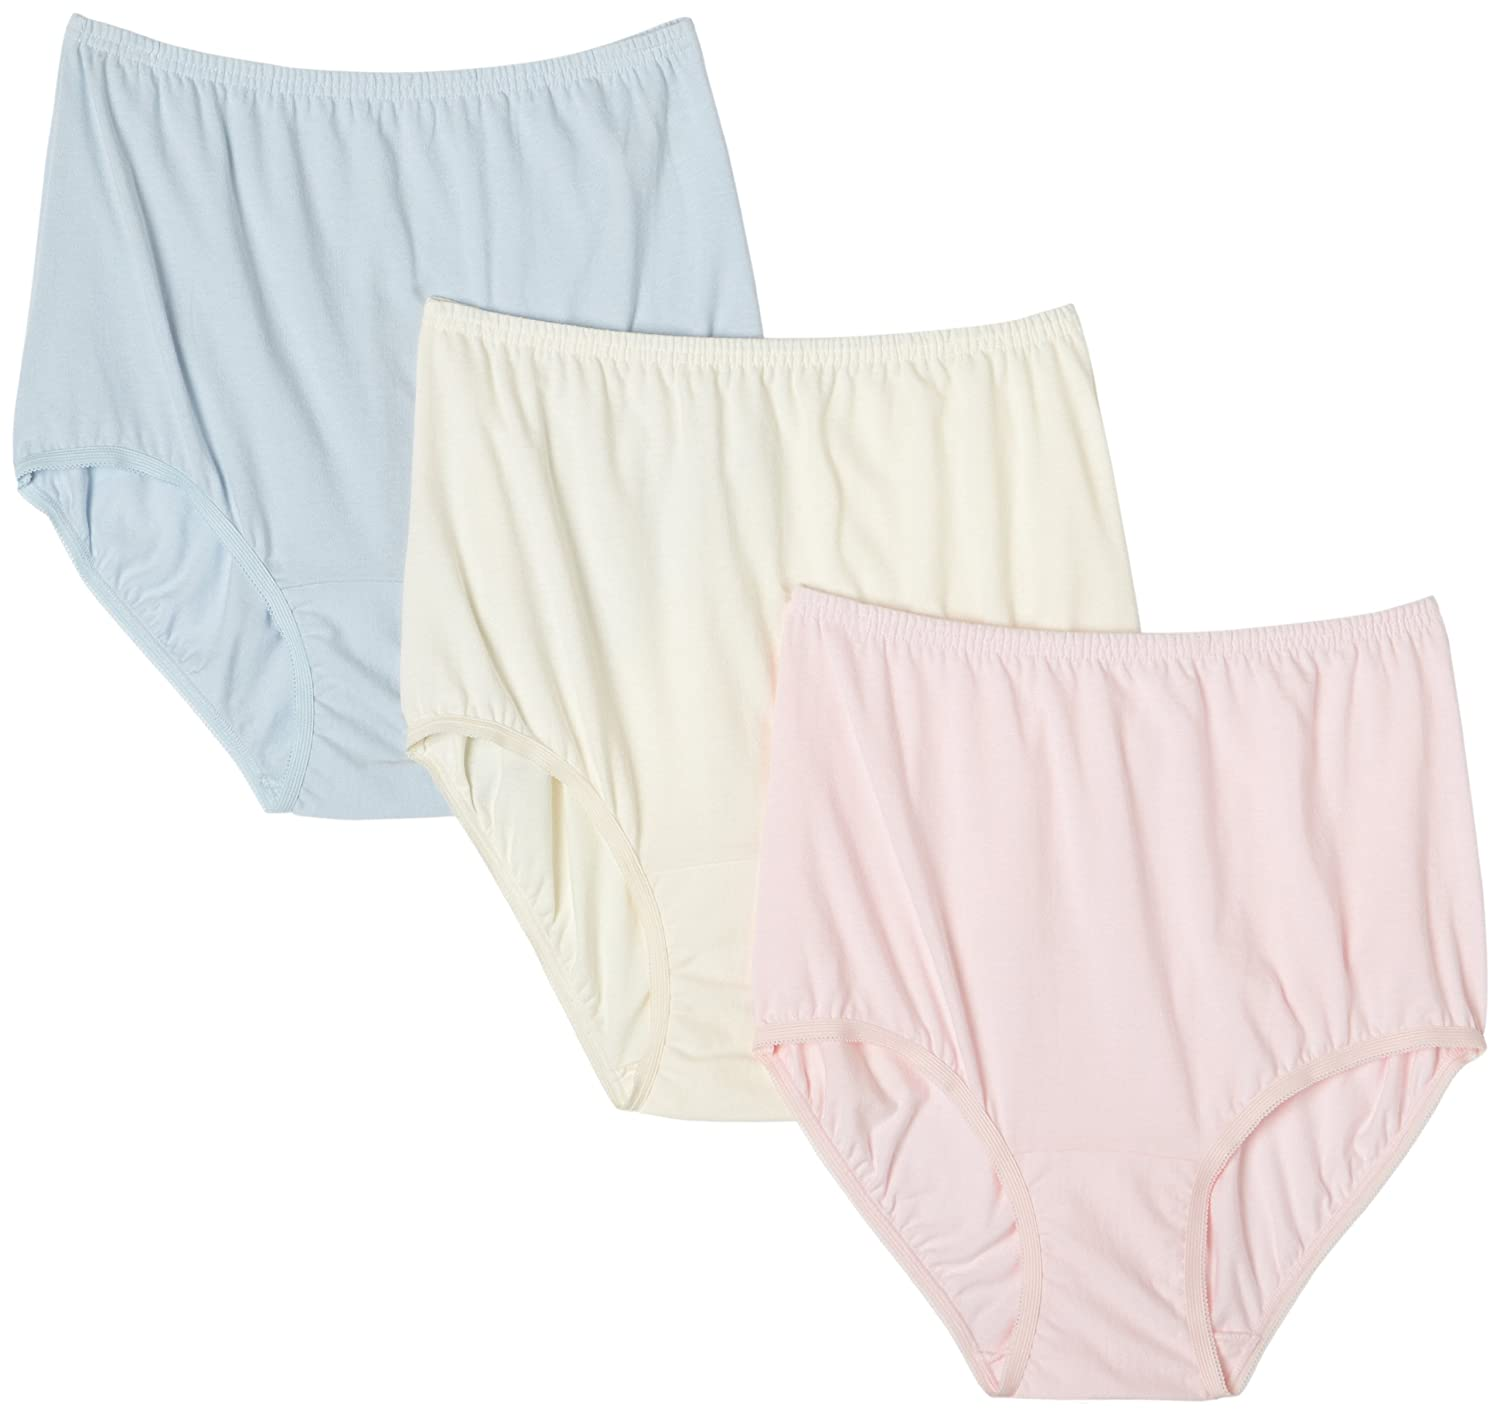 Vanity Fair Womens Perfectly Yours Classic Cotton Brief Panty